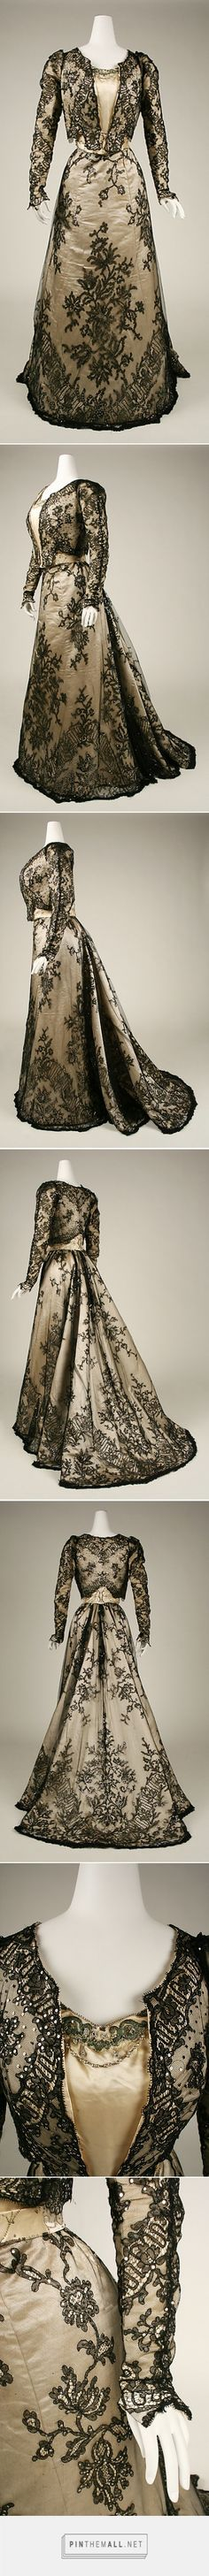 Evening dress 1898-99 American | The Metropolitan Museum of Art